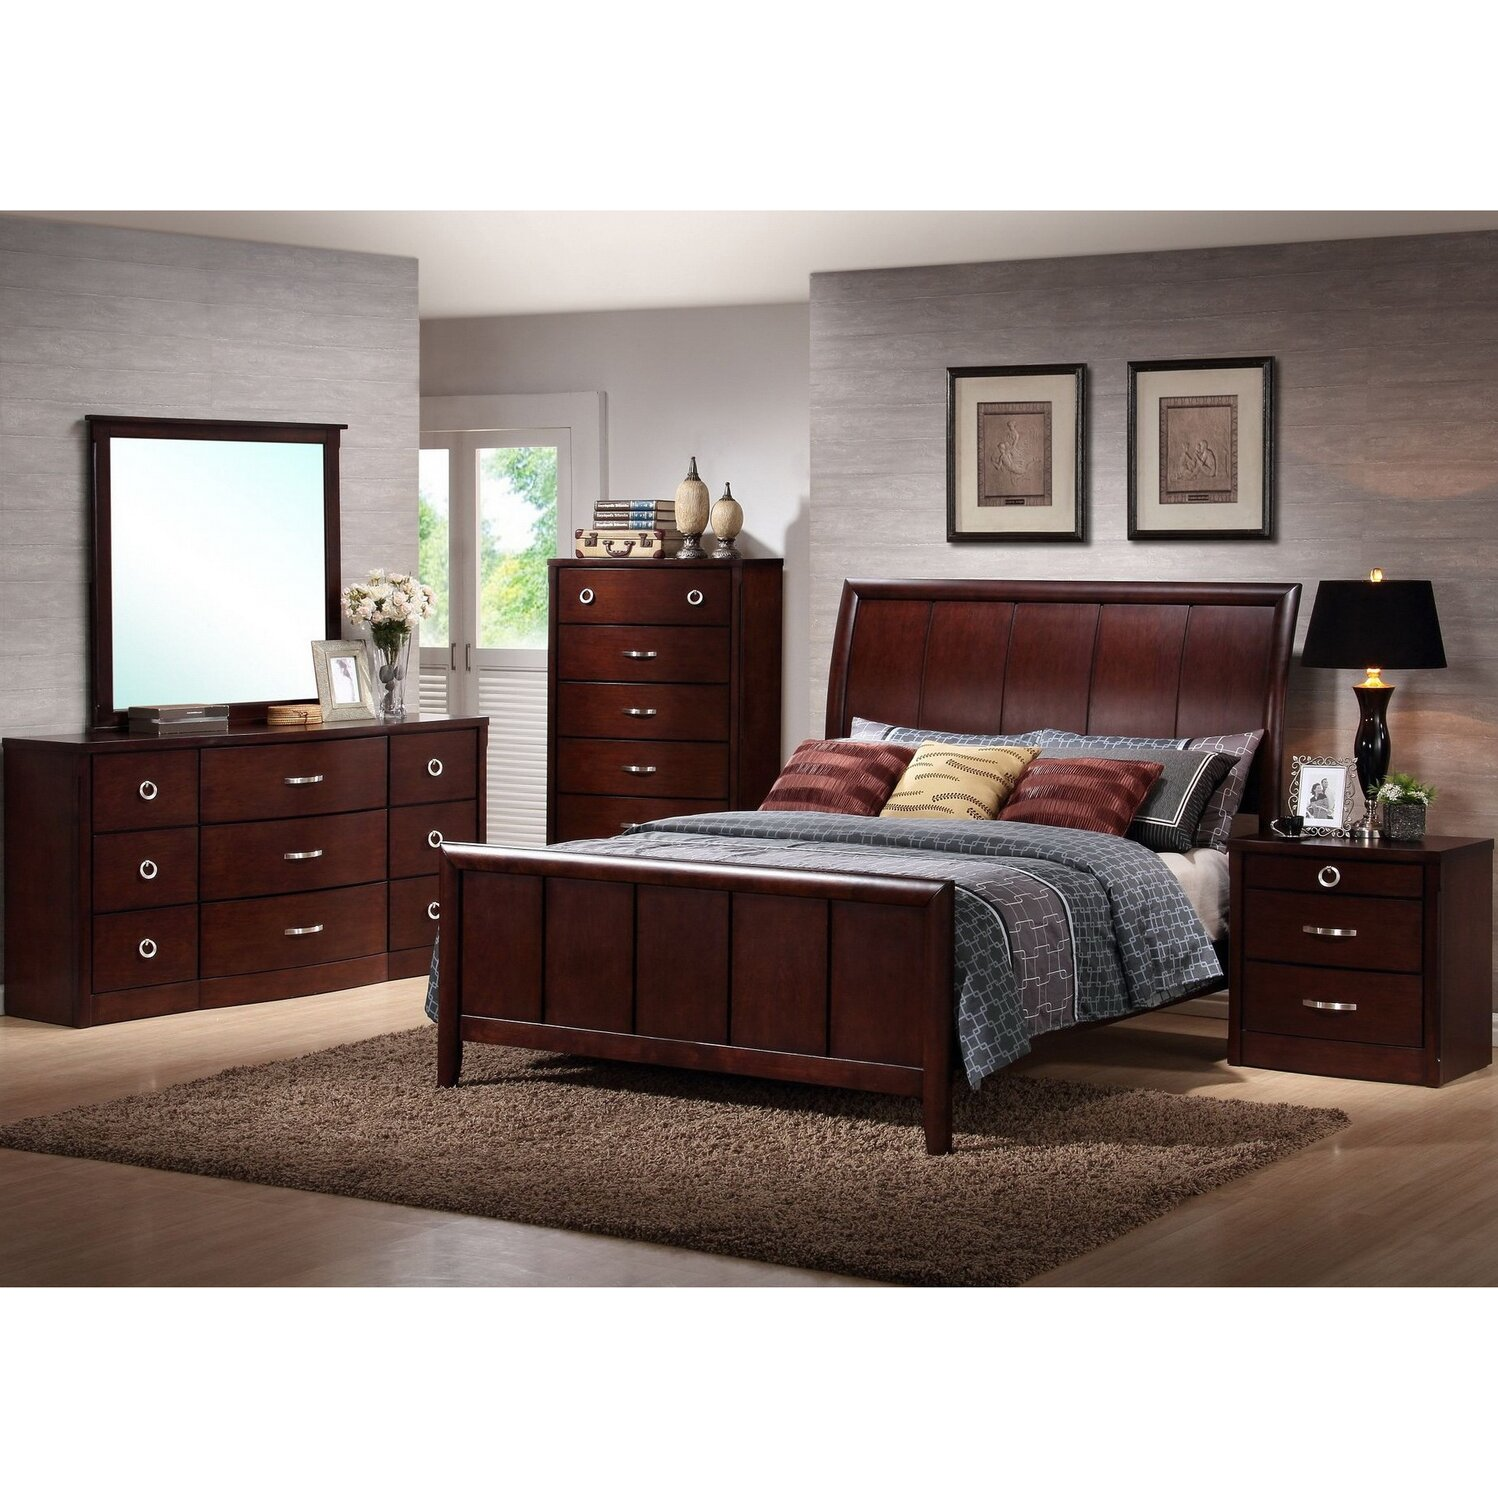 Wholesale Interiors Baxton Studio Sleigh 5 Piece Bedroom Set Reviews